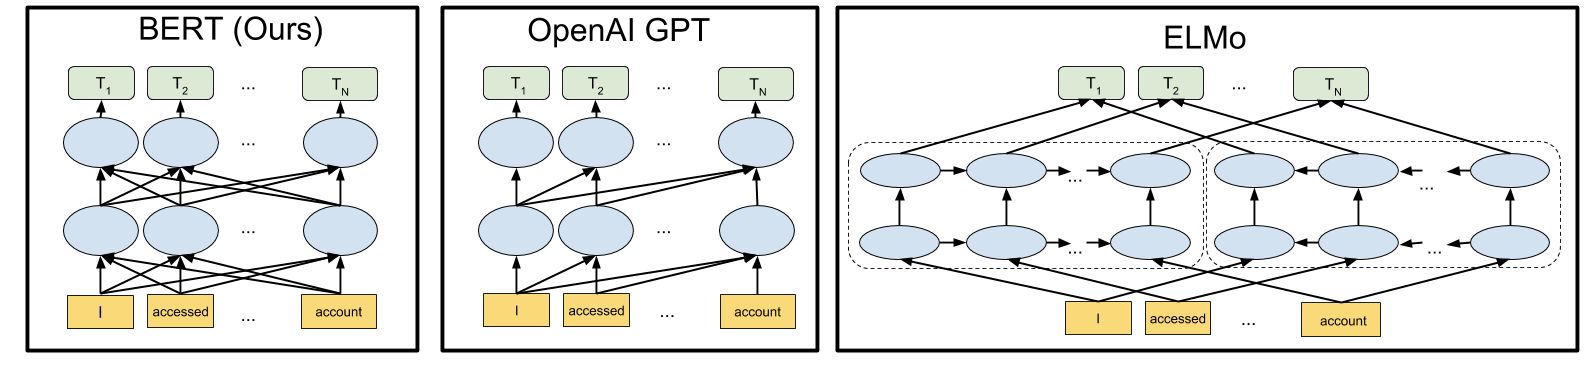 Using Transfer Learning for NLP with Small Data - Insight